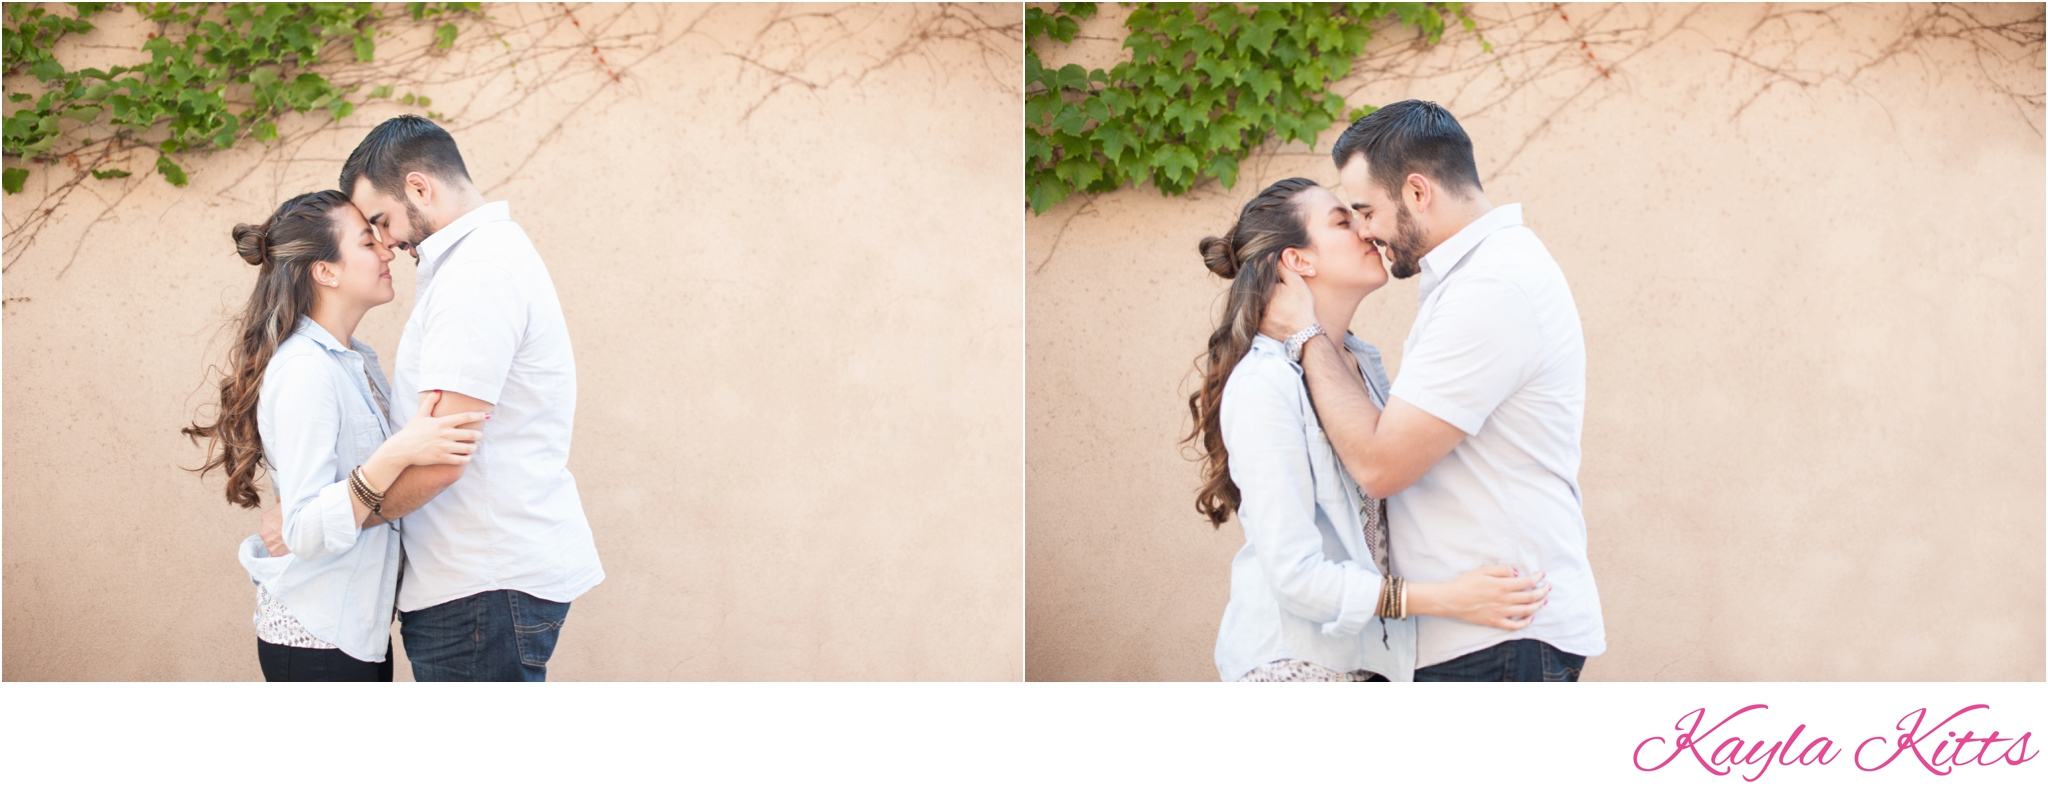 kayla kitts photography - albuquerque wedding photographer - green jeans - brewery engagement session - old town - destination wedding - cabo wedding photographer - santa fe brewery_0015.jpg